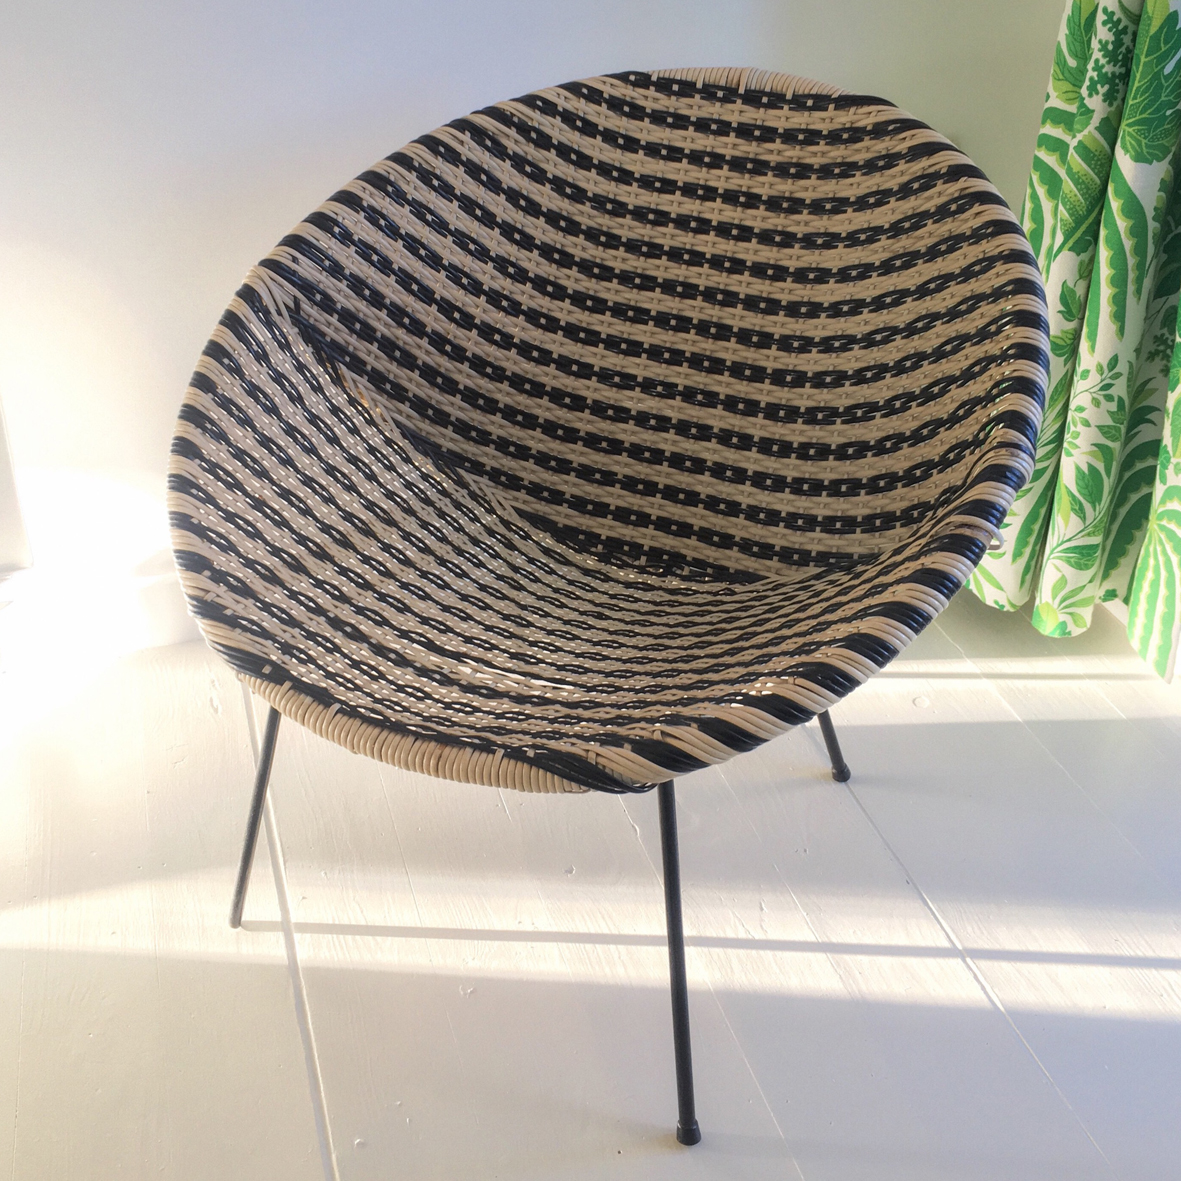 I walked all the way home with said basket chair on my back like a proud little turtle -